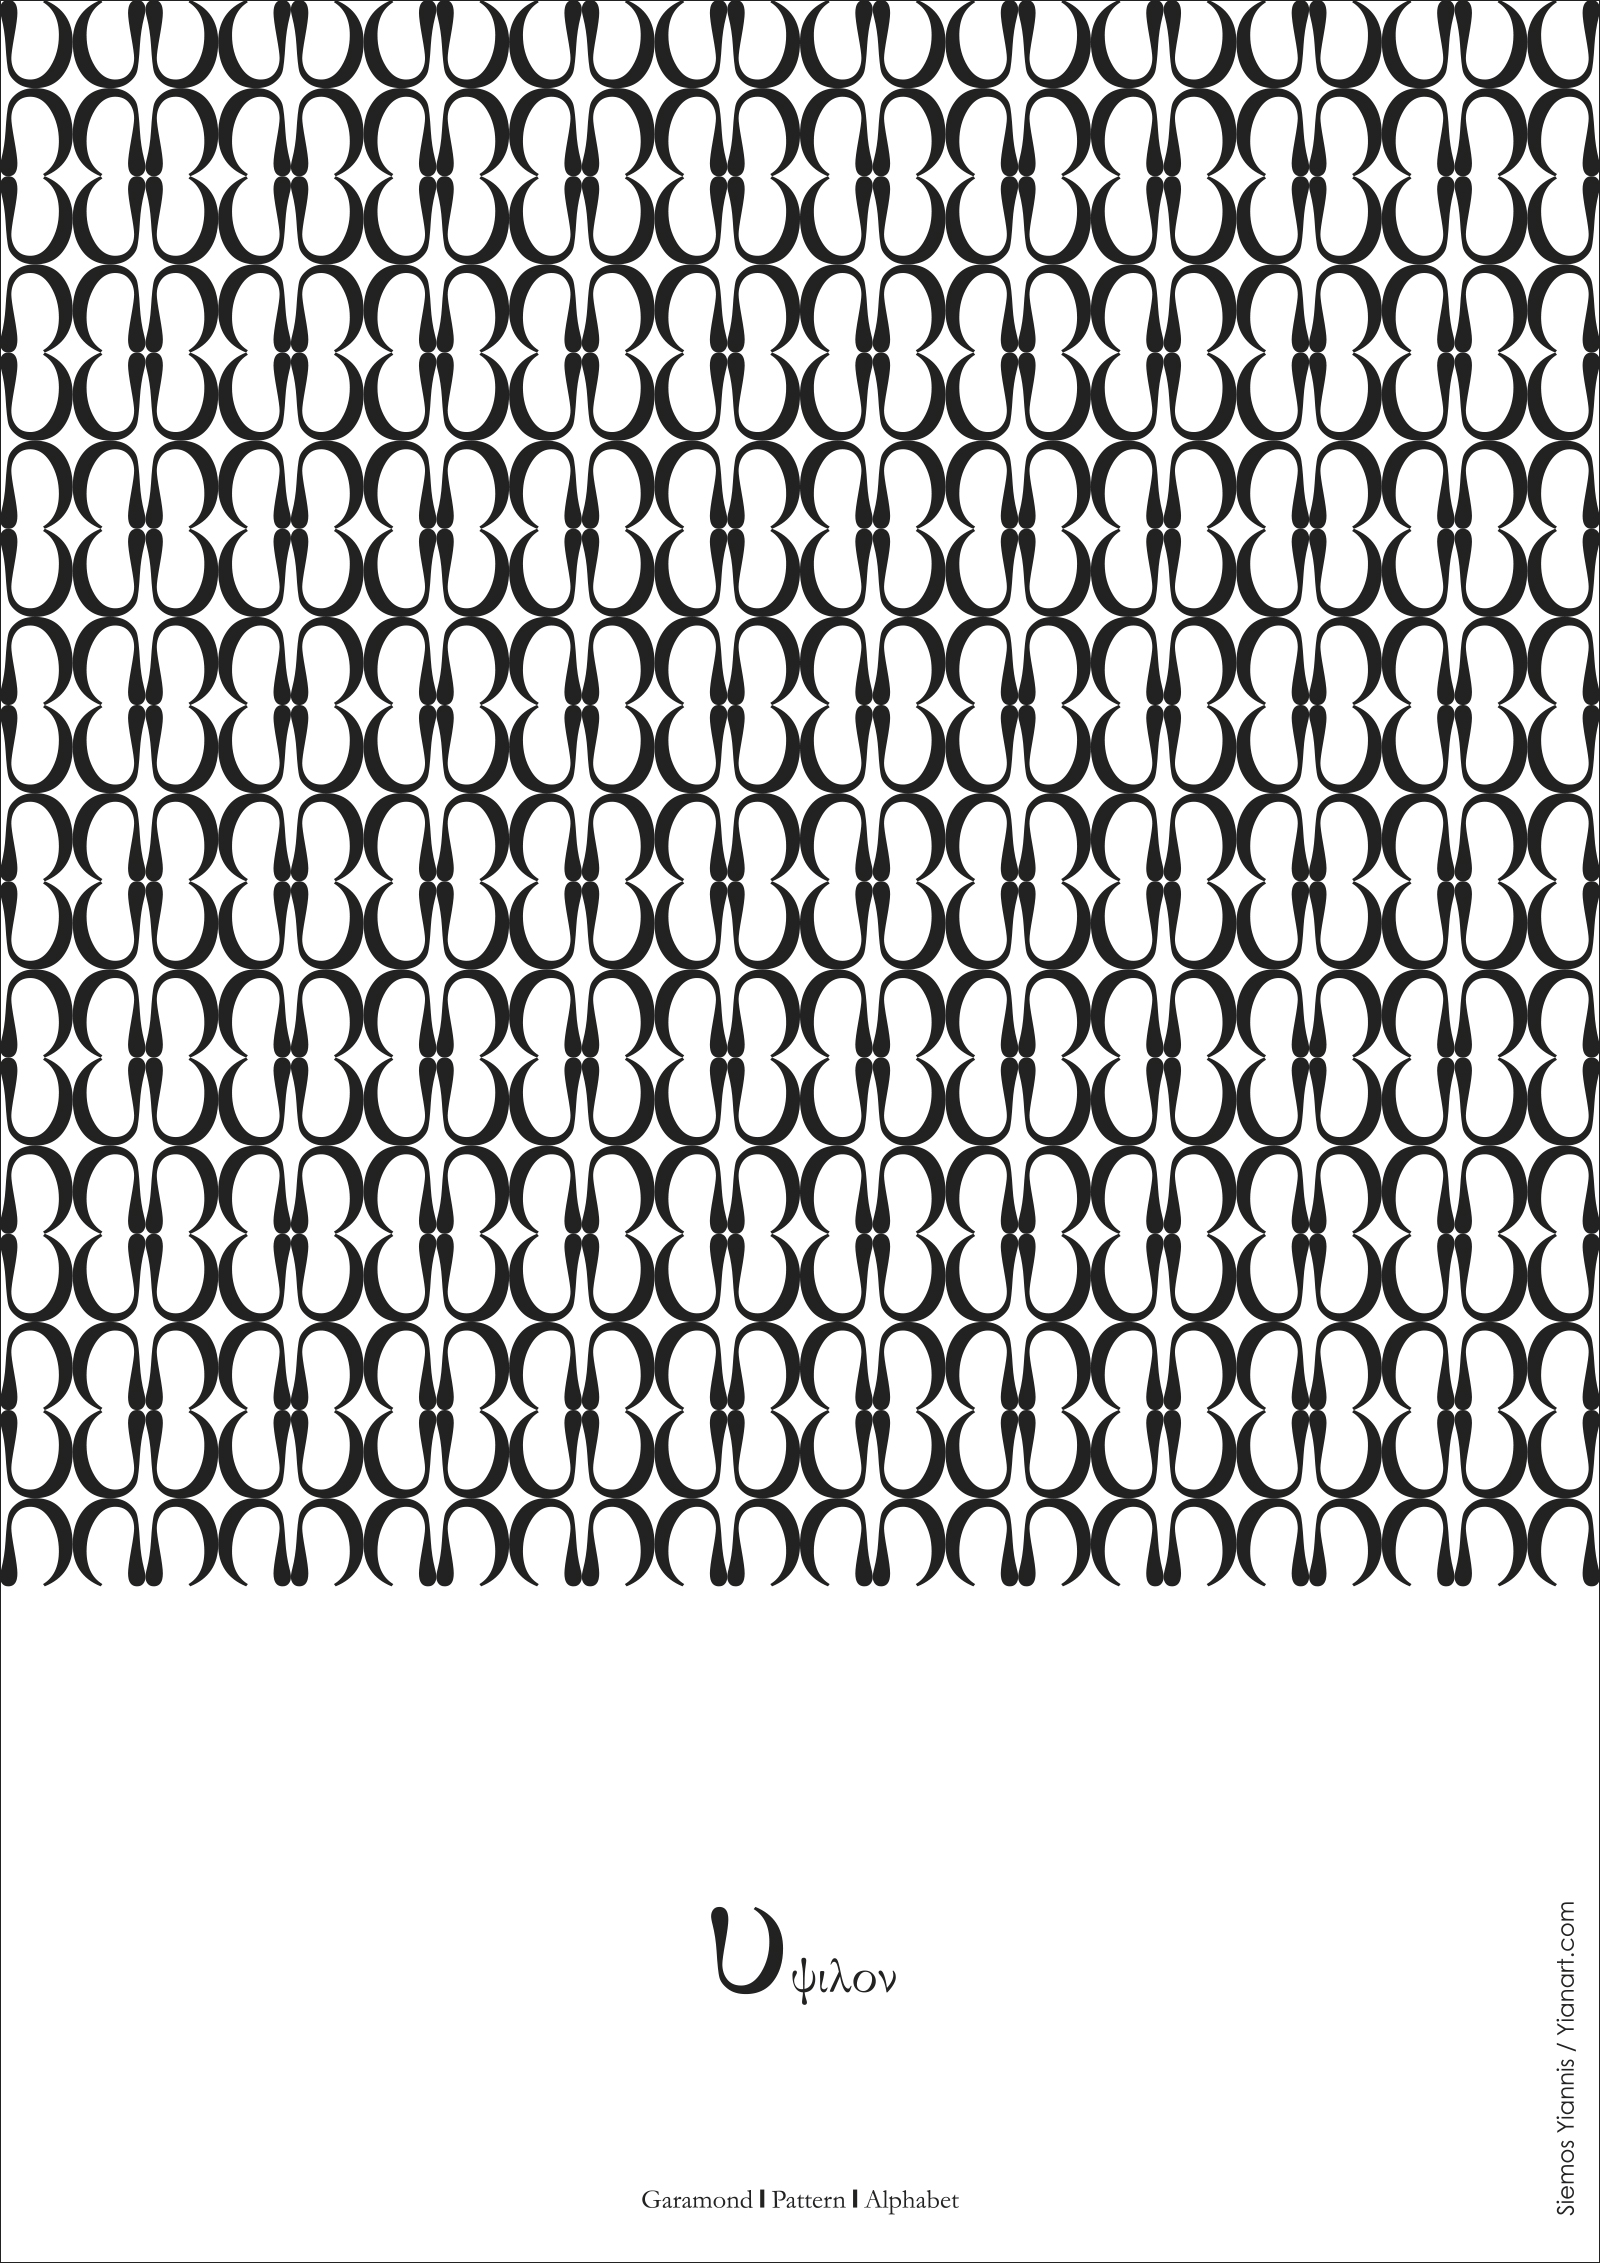 Greek Fonts Patterns_Upsilon2_Yianart